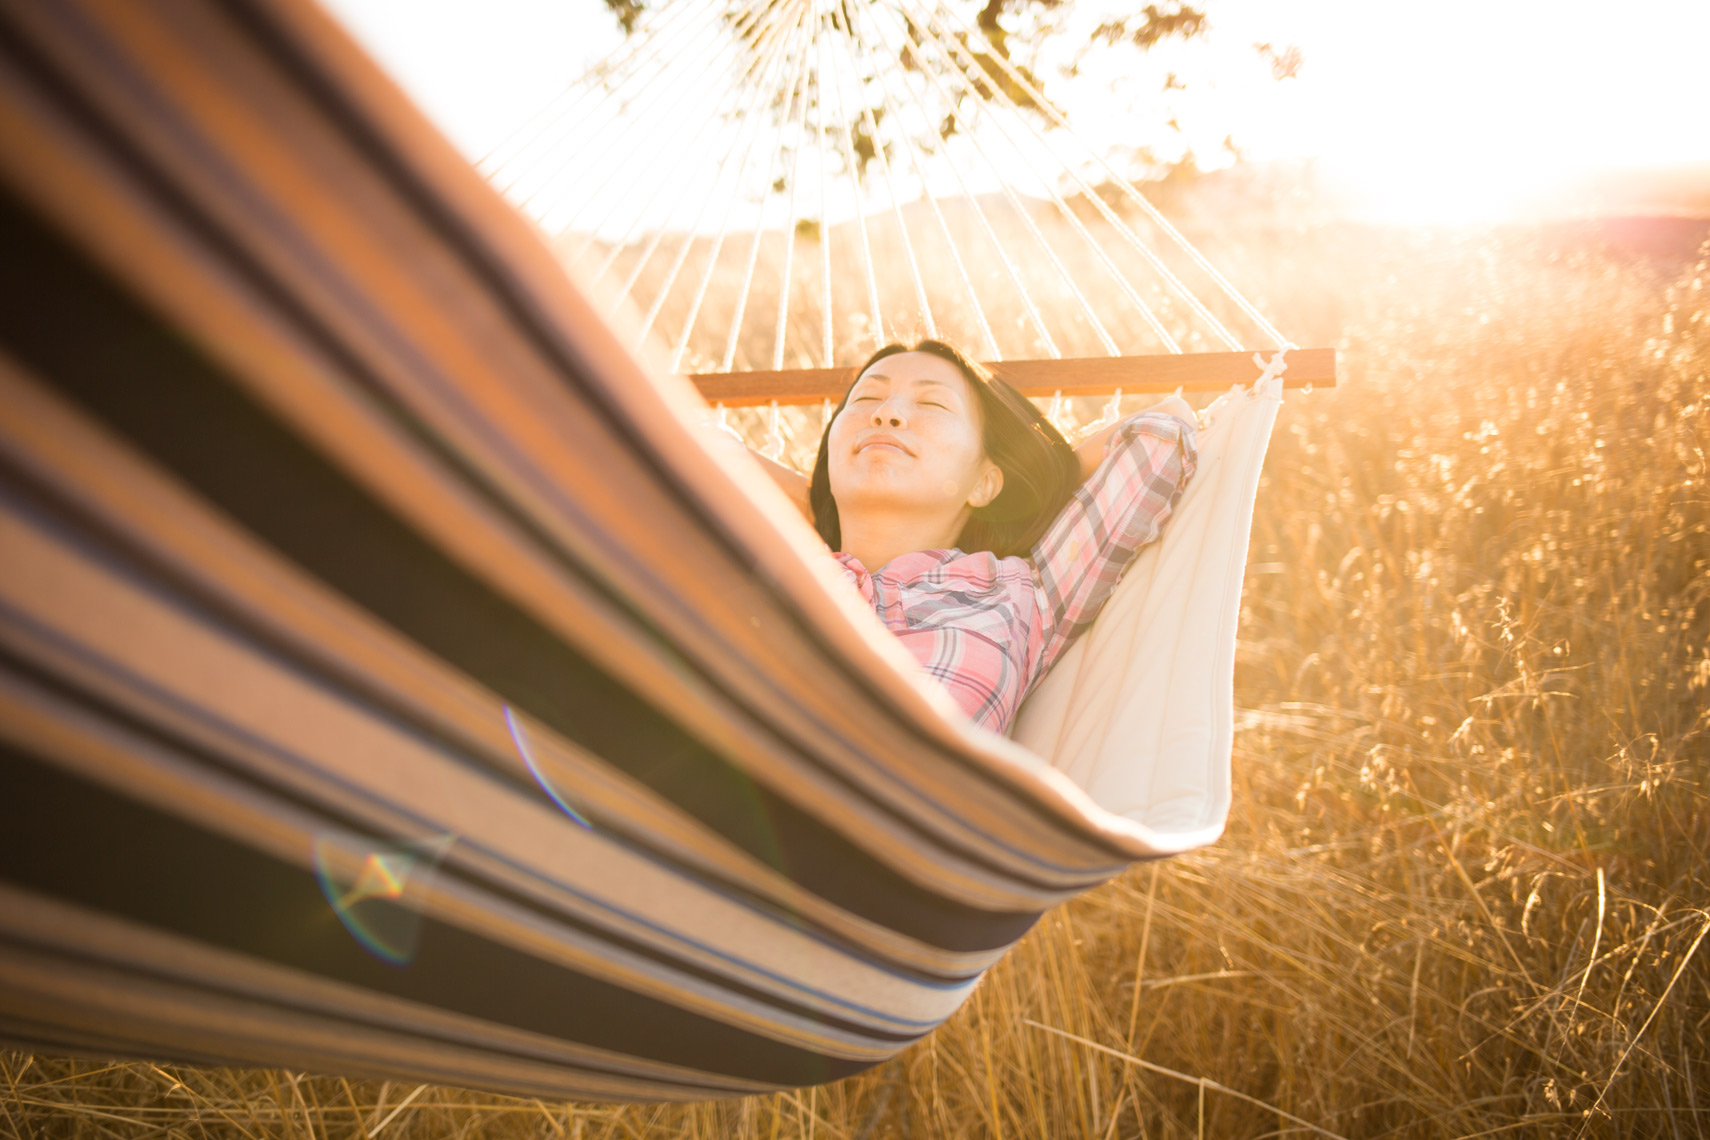 San Francisco Bay Area Advertising, Lifestyle, Commercial Photographer, asian female laying on a hammock outdoor in the grass sunset, summer, swinging, afternoon